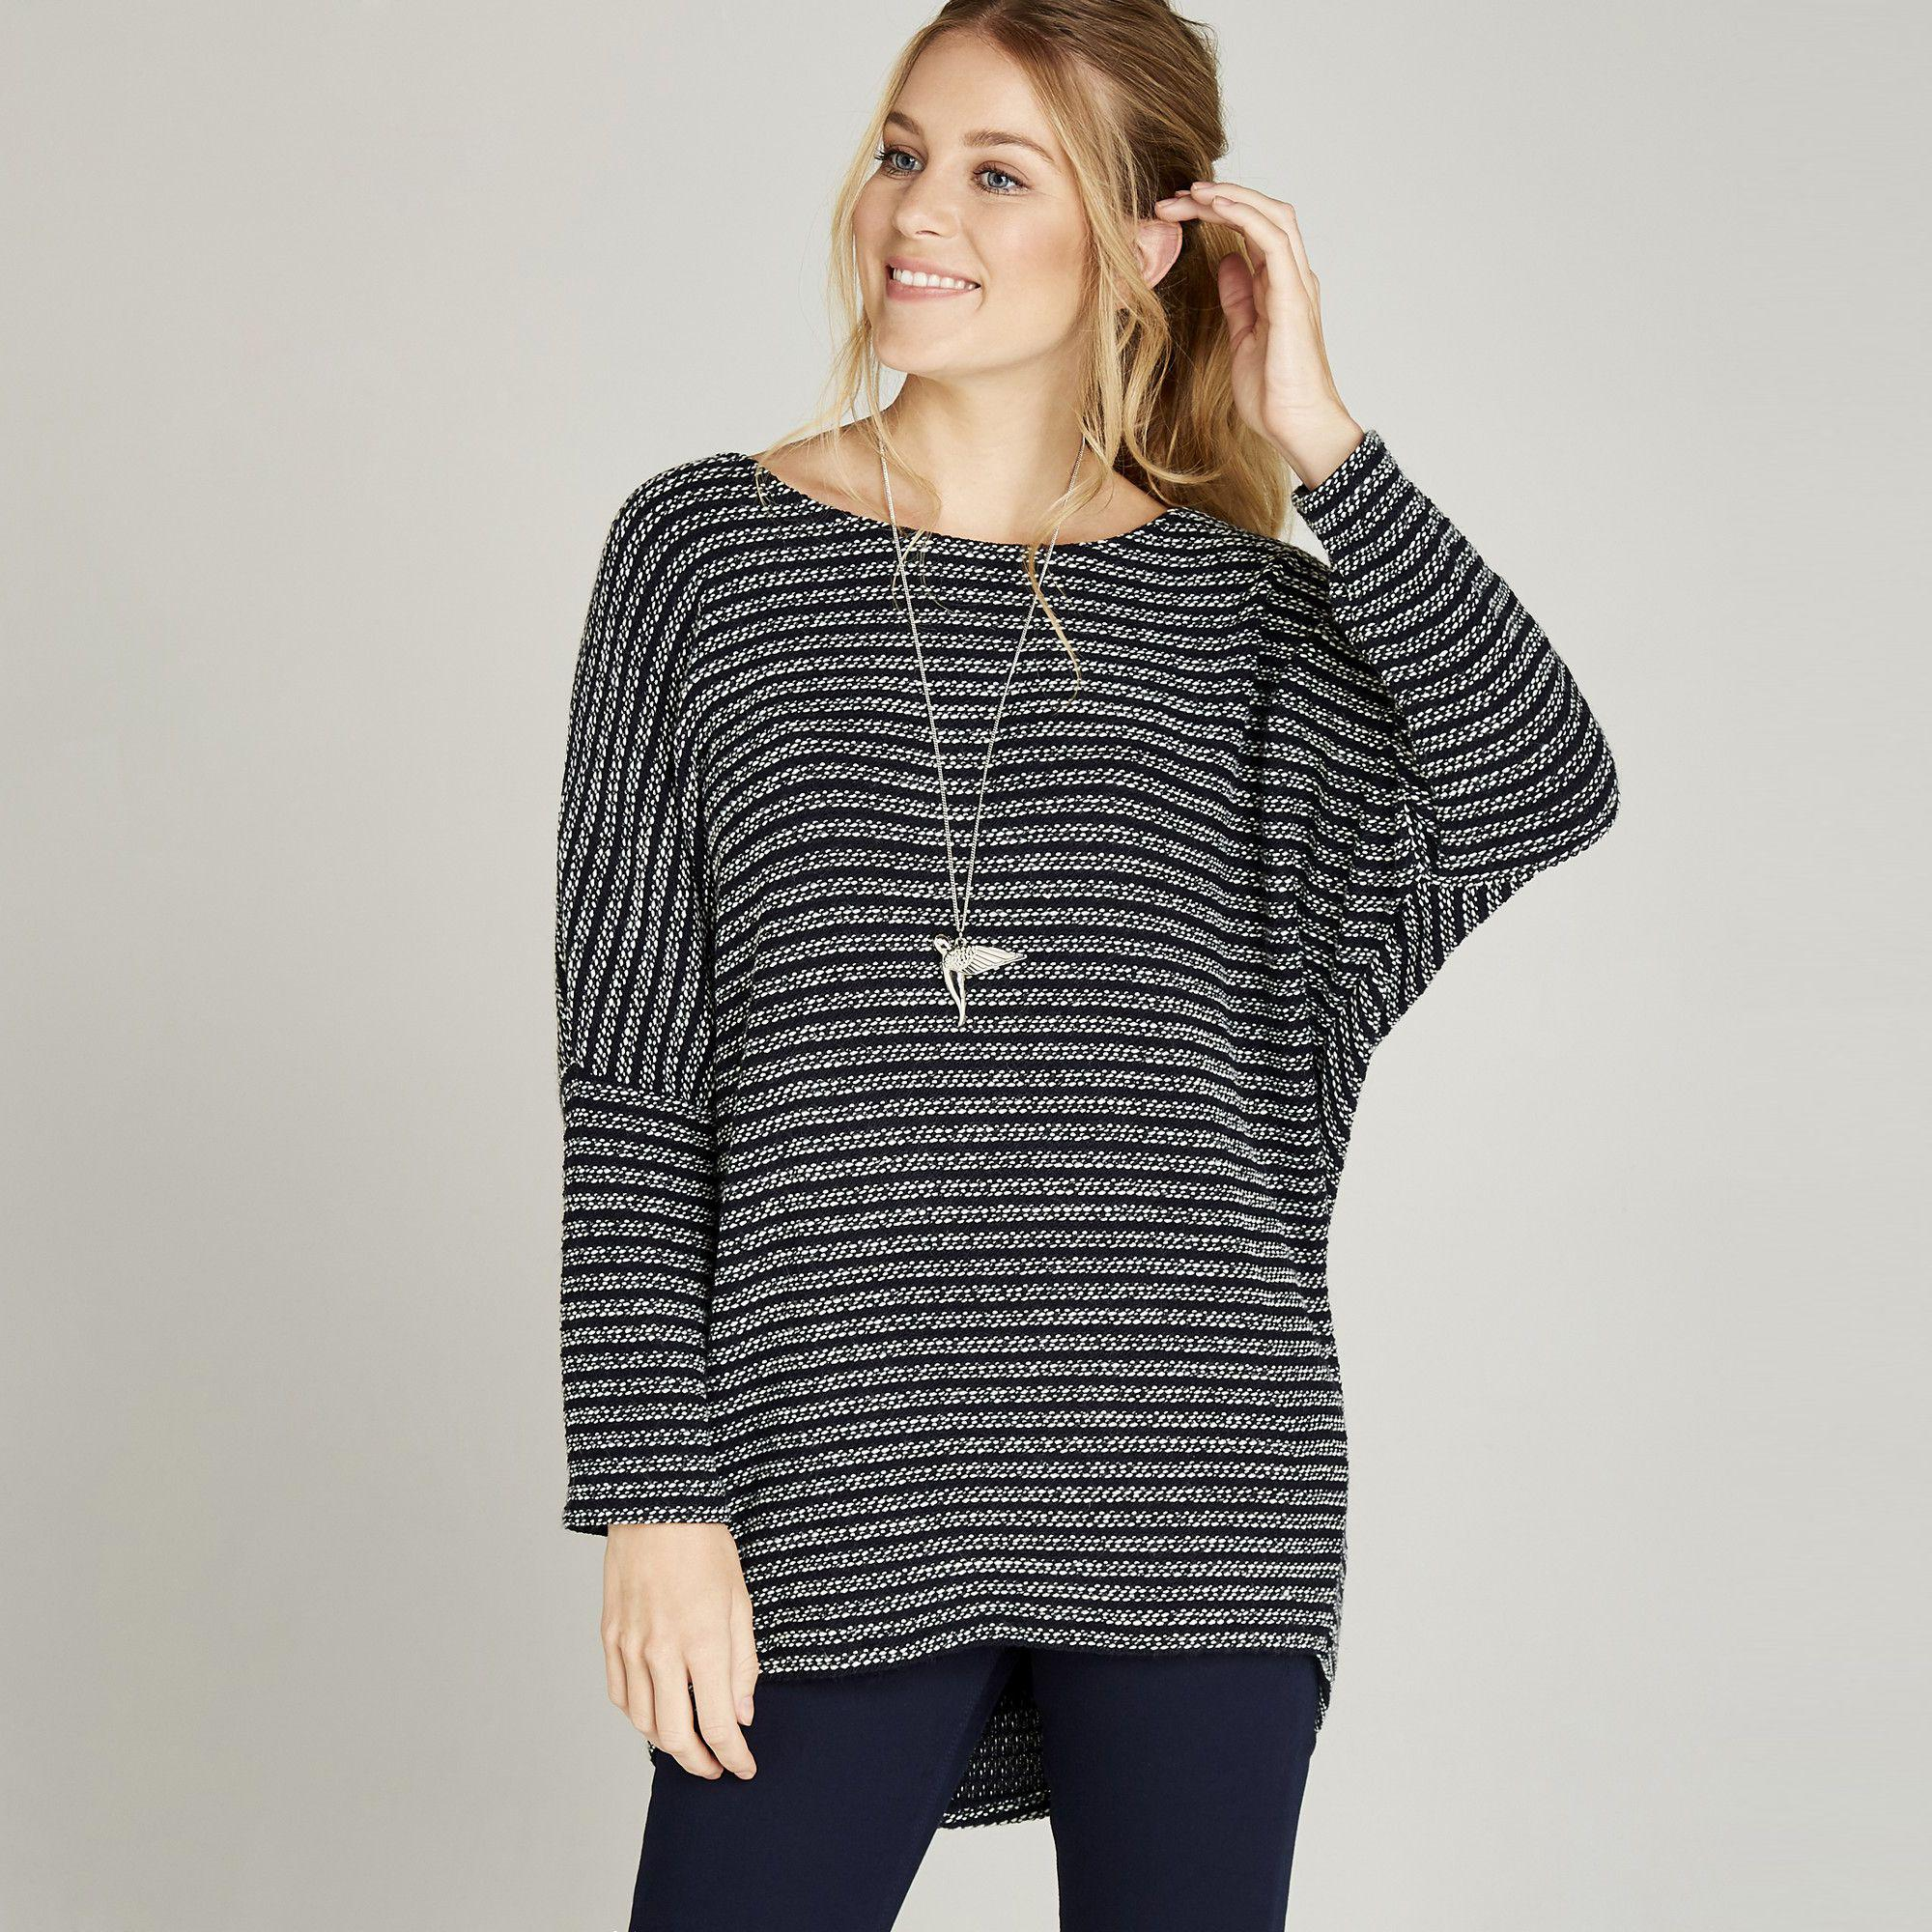 ae84fdeb720cbd Apricot Navy Textured Stripe Oversized Top in Blue - Lyst